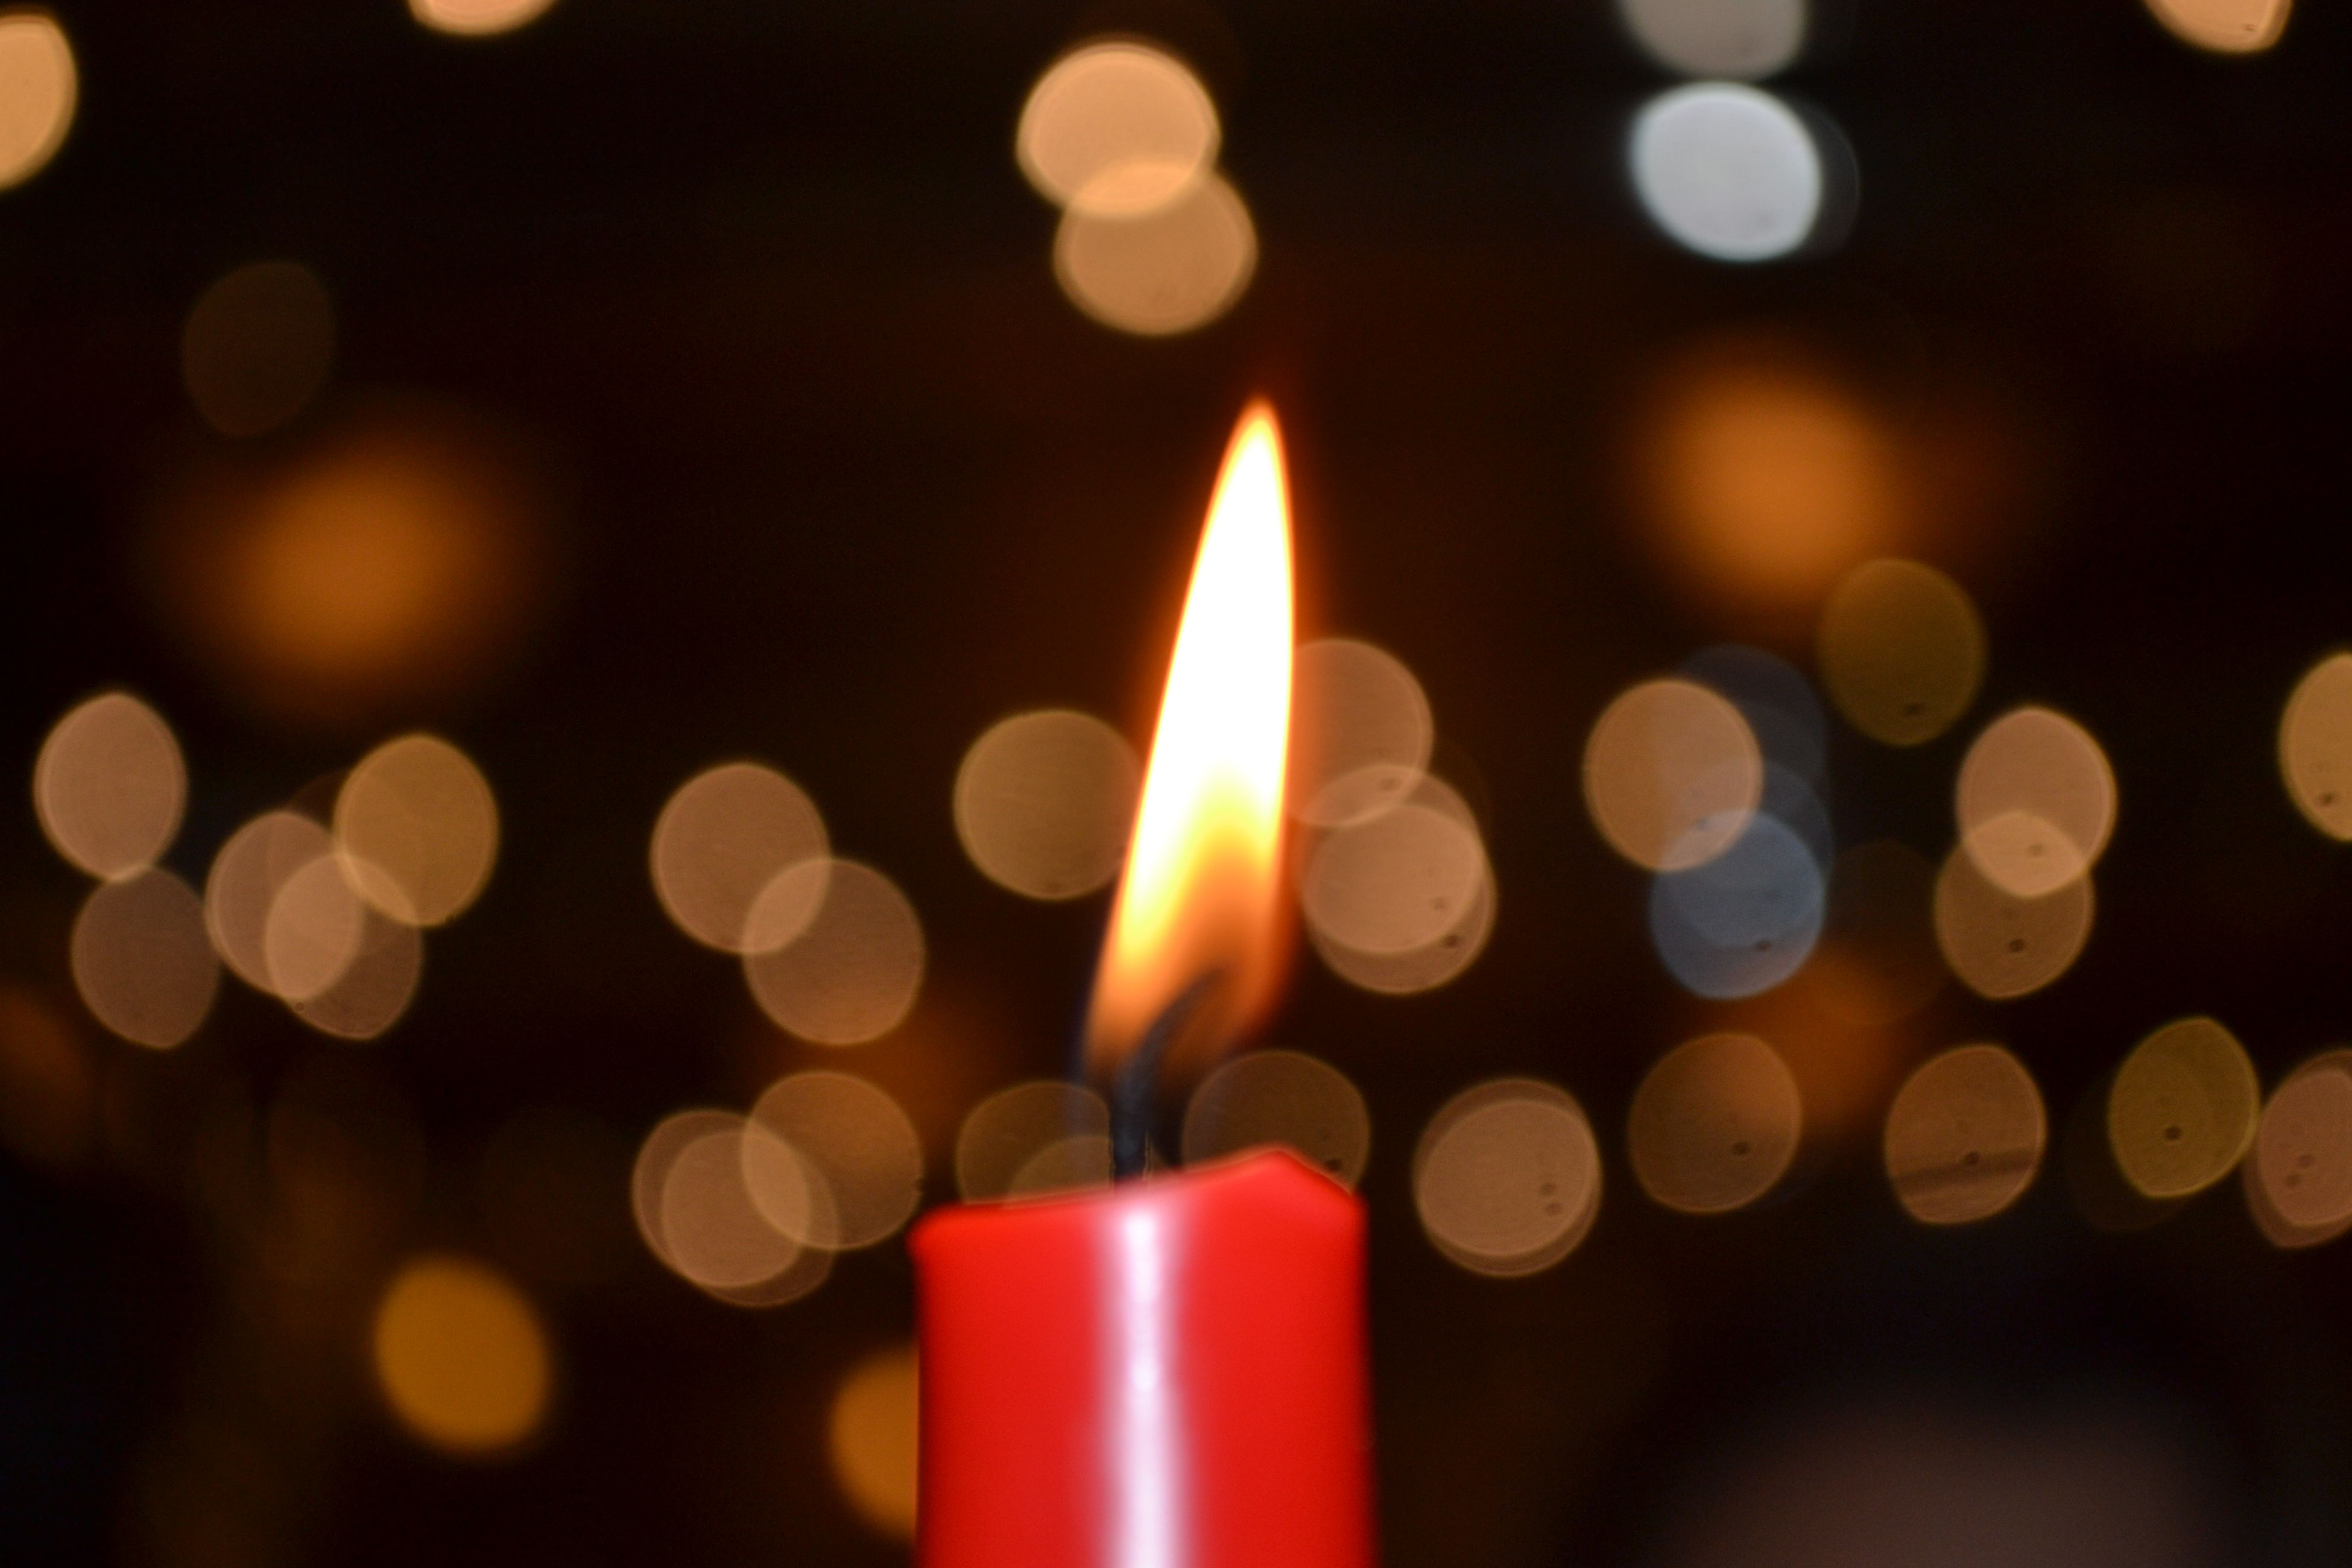 illuminated, glowing, indoors, multi colored, close-up, lighting equipment, defocused, night, circle, light - natural phenomenon, abstract, selective focus, candle, flame, in a row, pattern, backgrounds, no people, red, focus on foreground